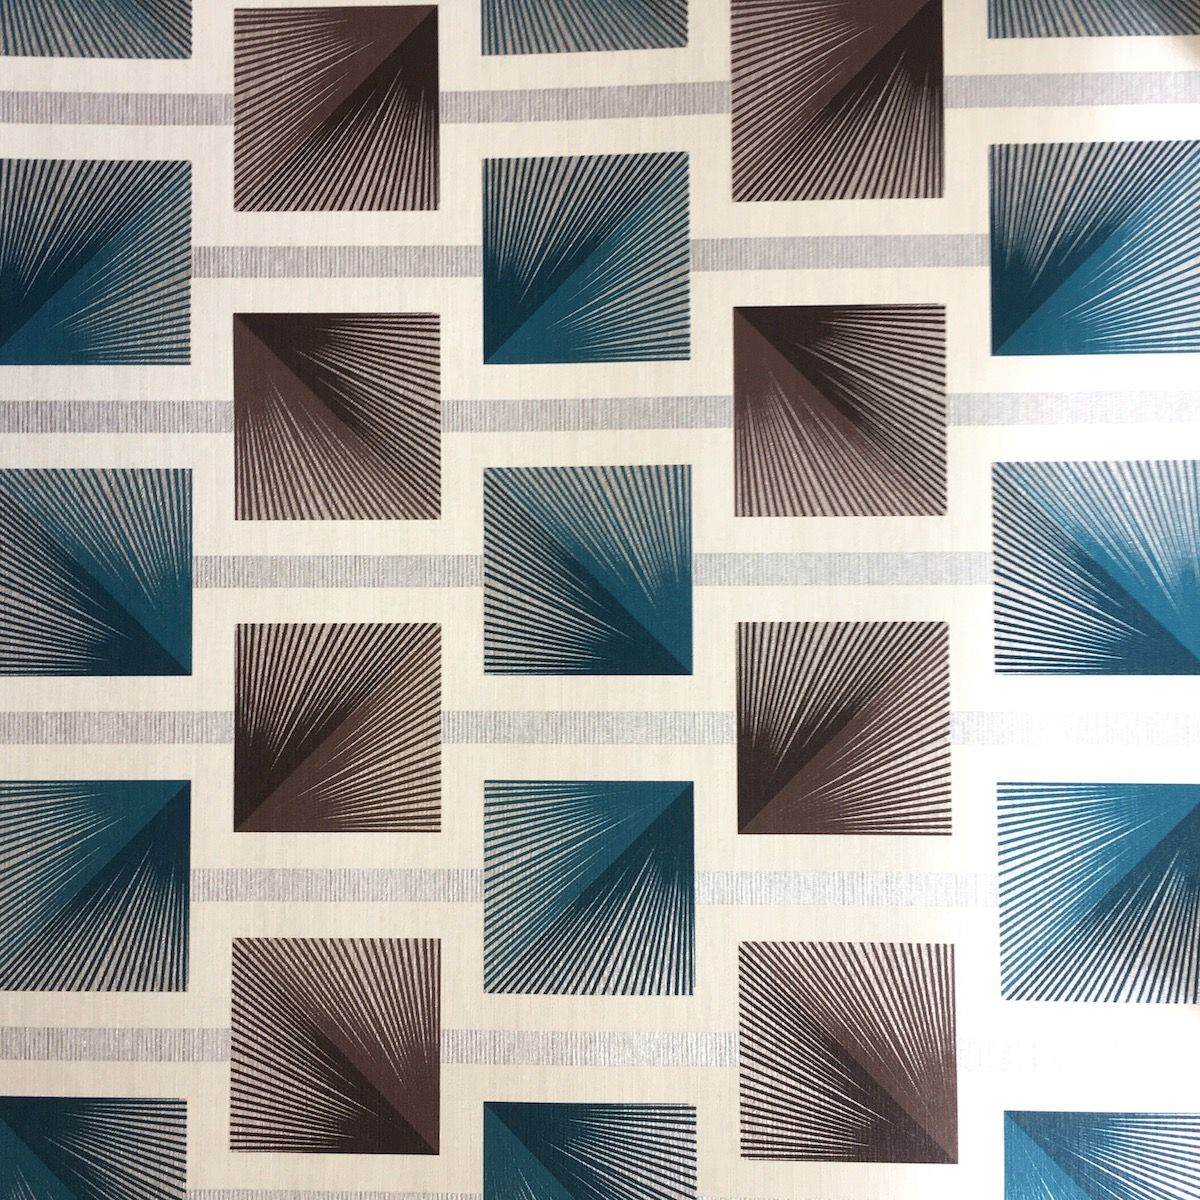 A boldsymmetrical retro square design in teal, brown and silveron a cream background and printed on a heavy weight vinyl wallpaper Co-ordinates with our Calico plain cream wallpaper